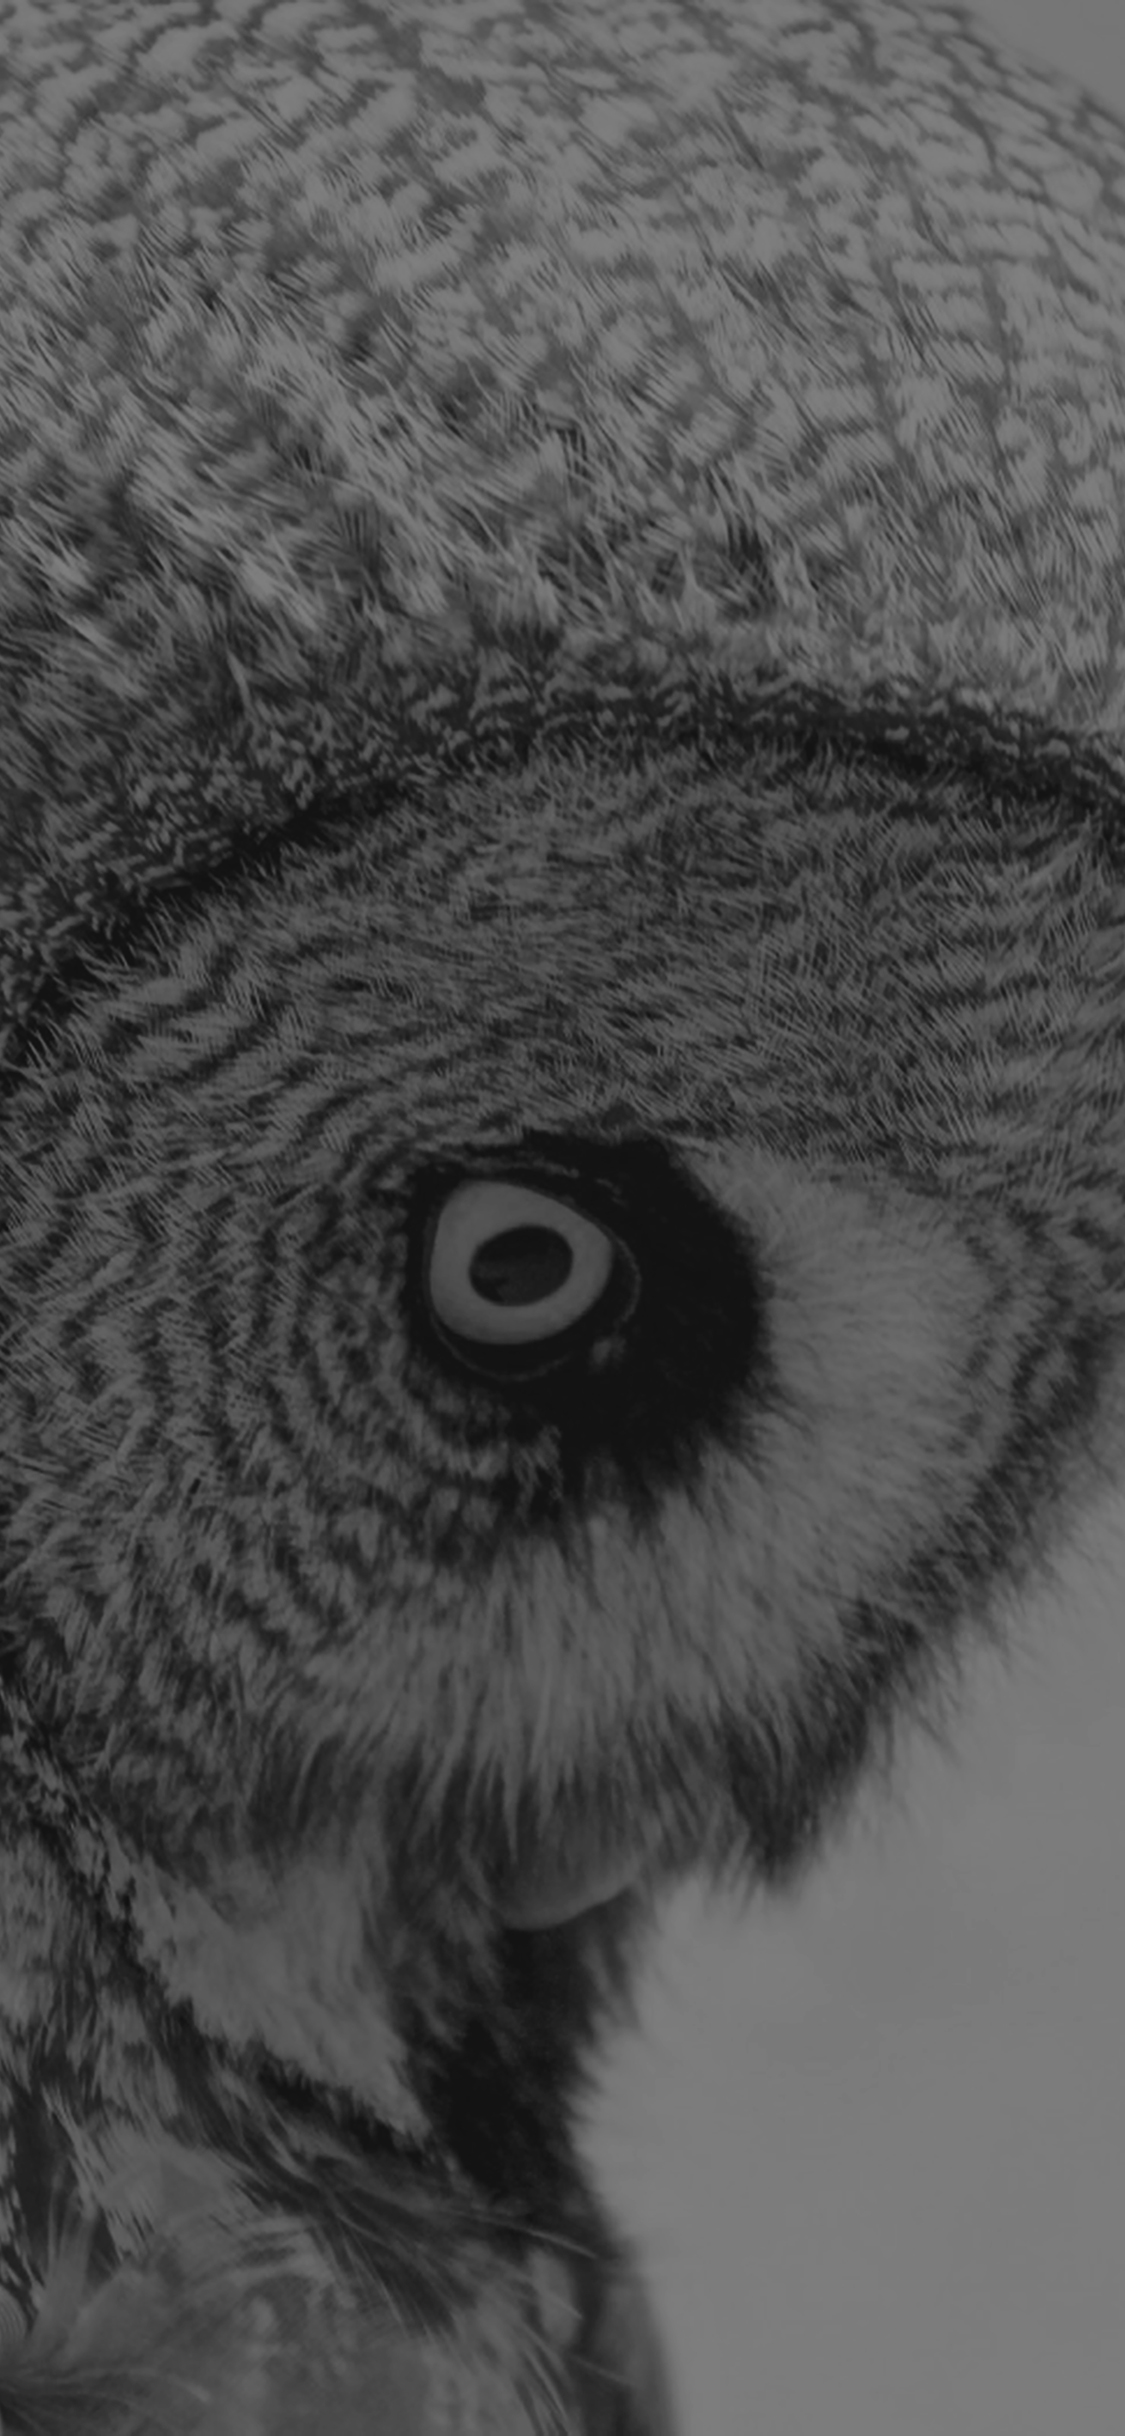 iPhoneXpapers.com-Apple-iPhone-wallpaper-mm85-owl-eye-bw-dark-animal-nature